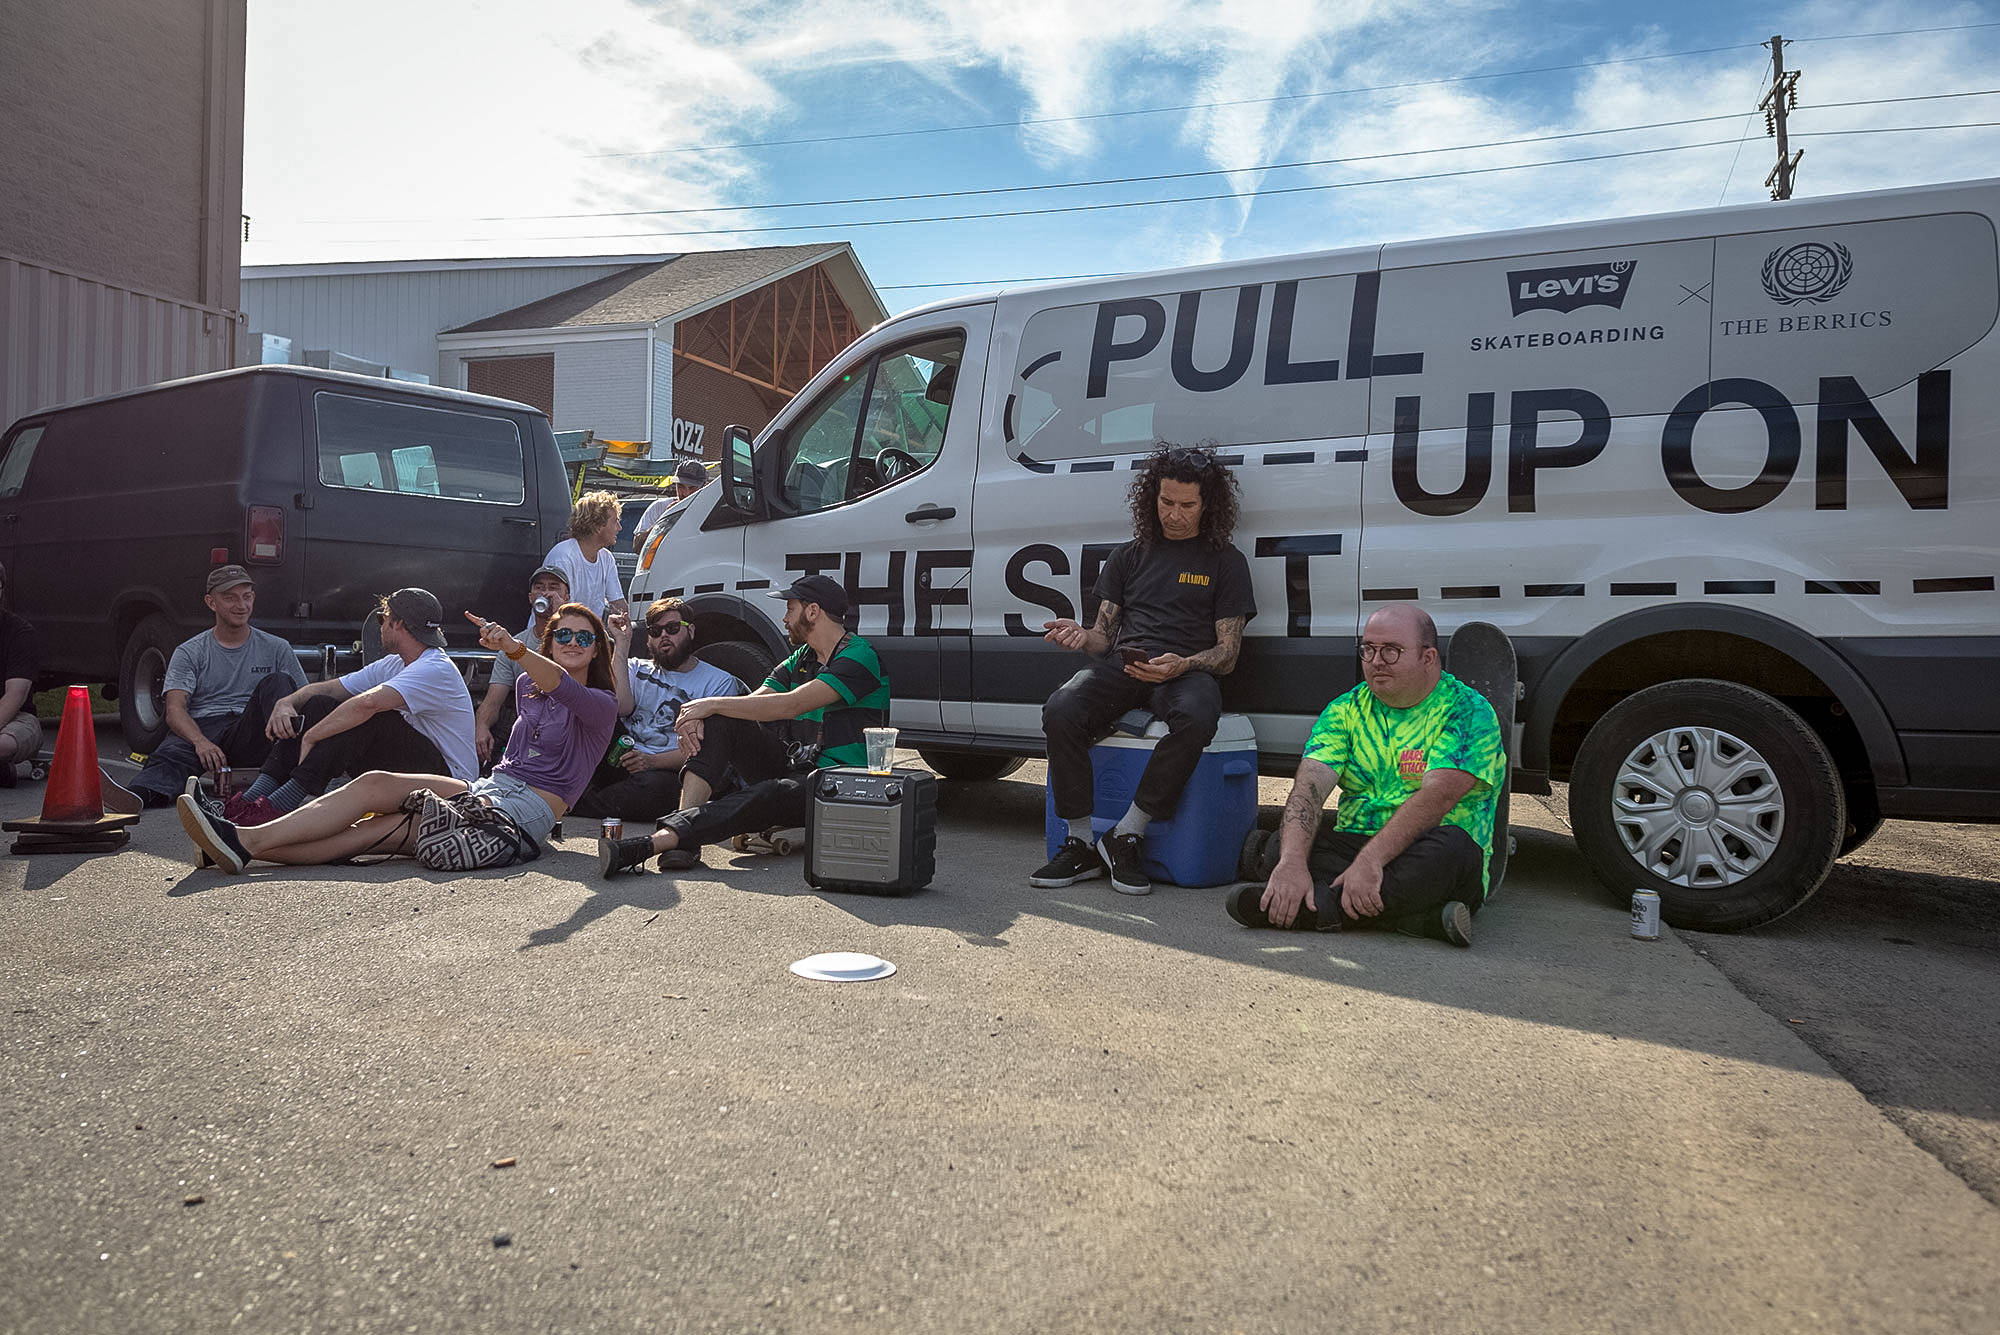 LEVI'S 'PULL UP ON THE SPOT' TOUR STOP 6: HUNT SUPPLY